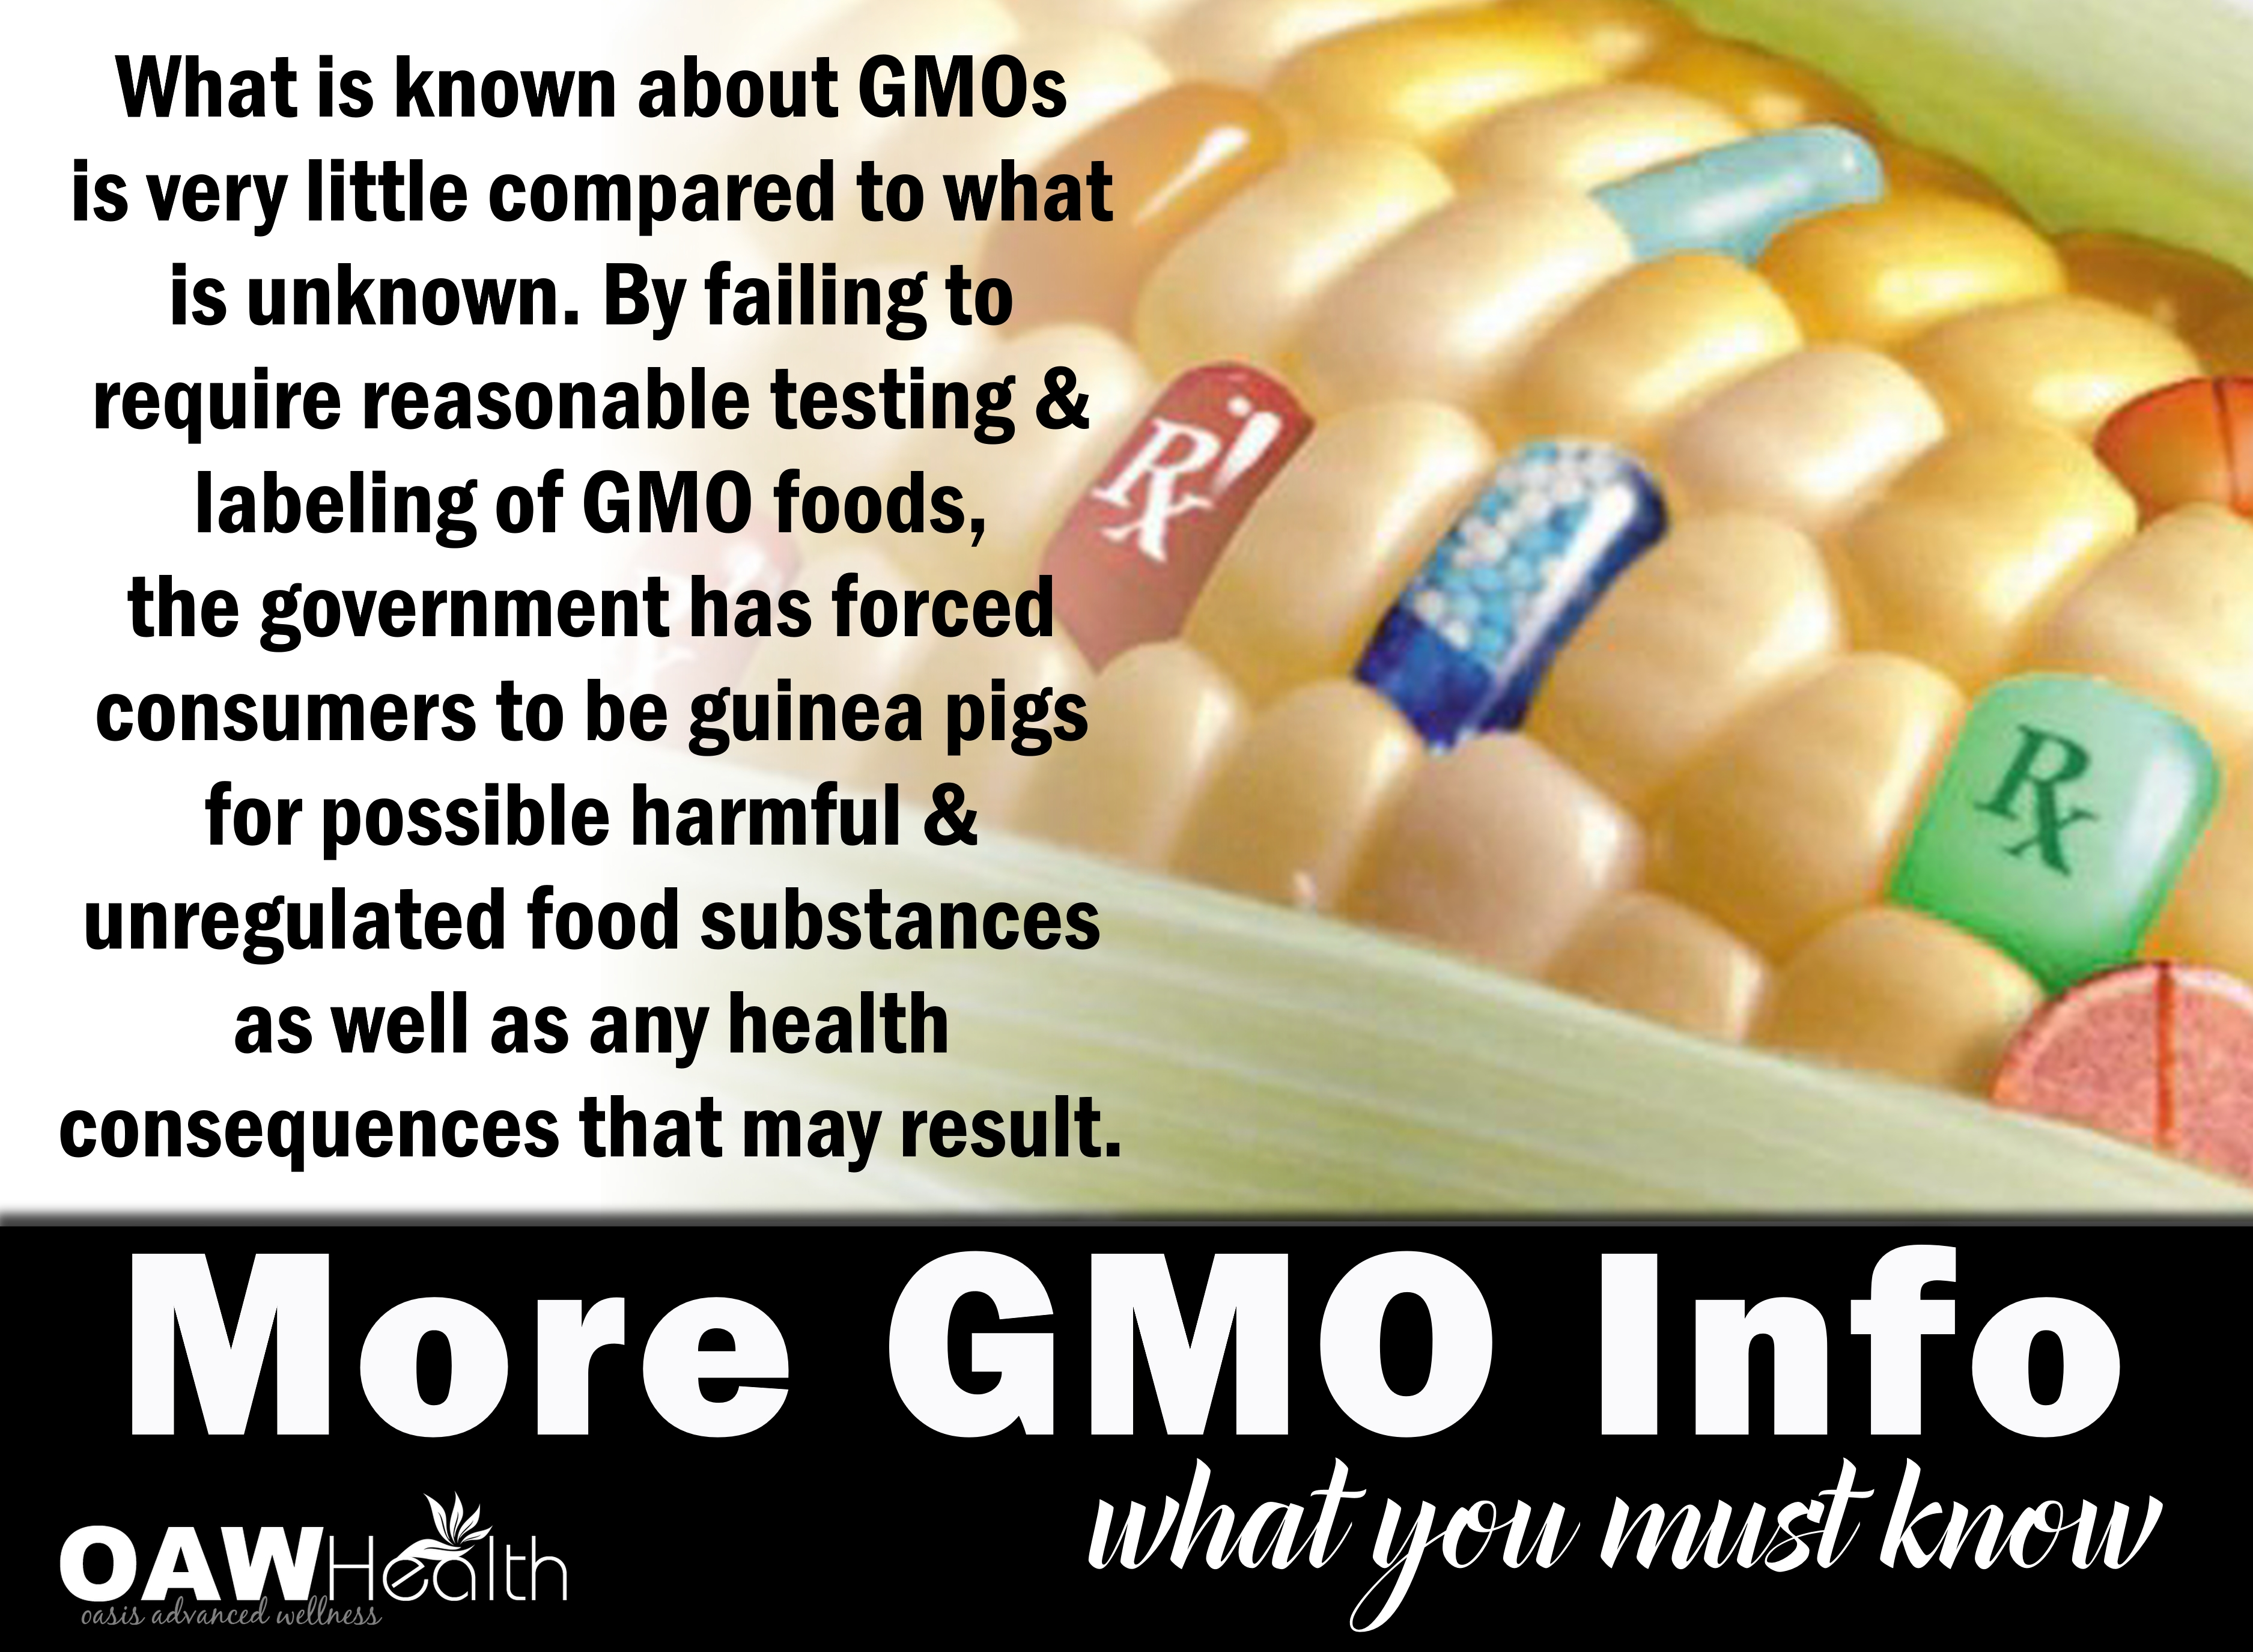 More GMO Info – What You Must Know